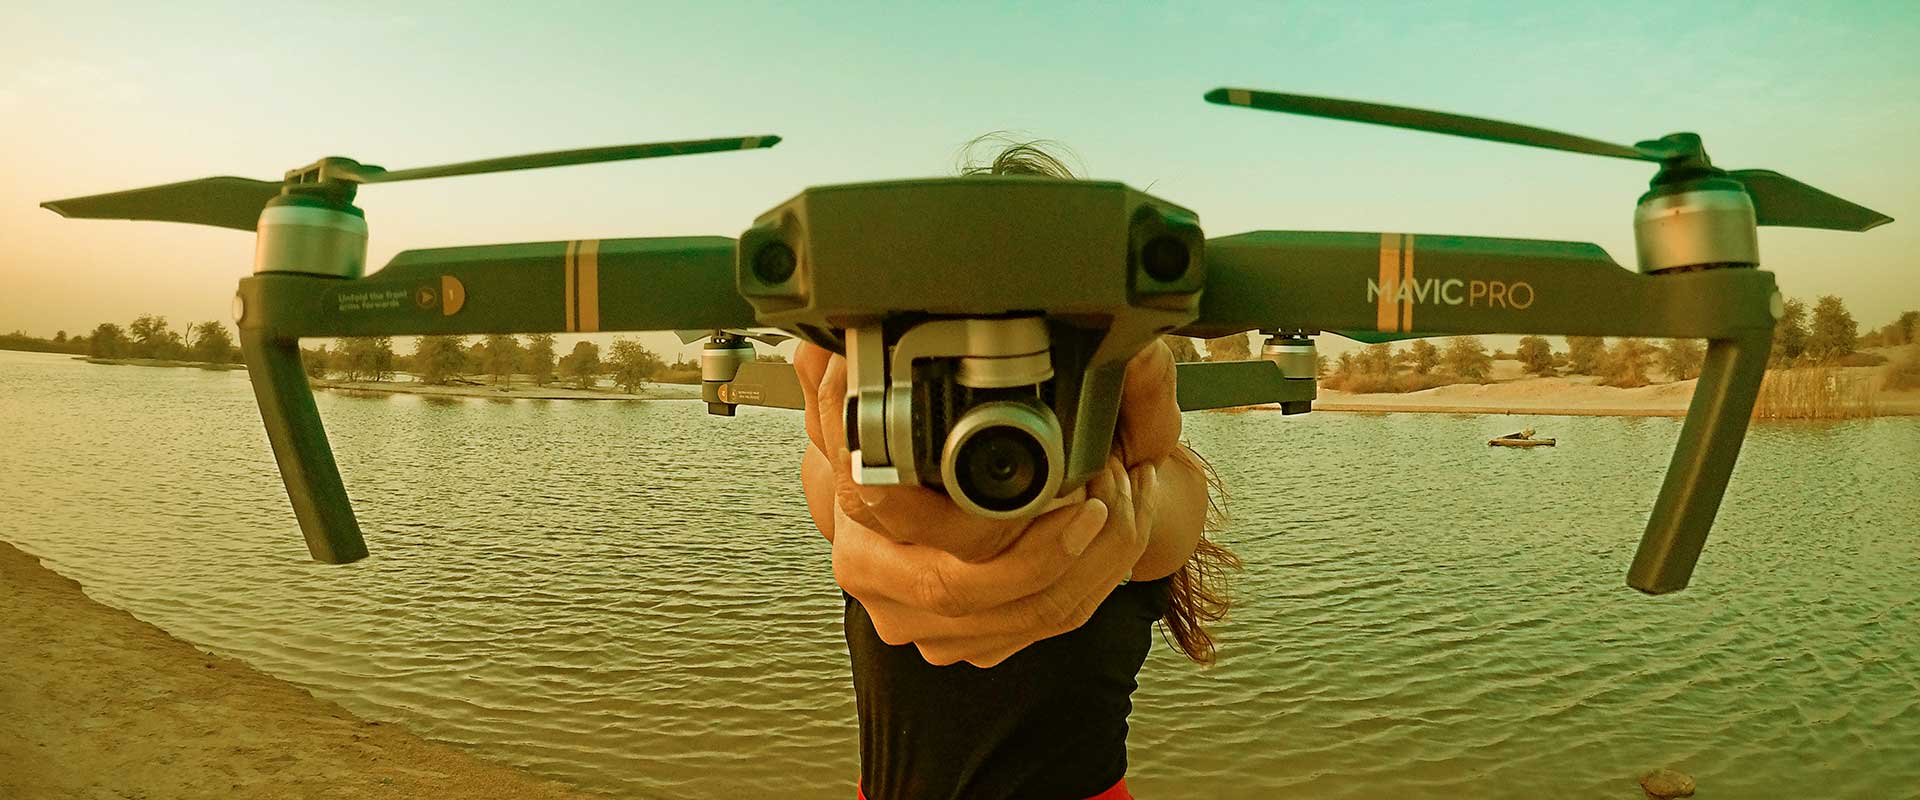 7 Amazing Facts About Drones We Want to Spread Out